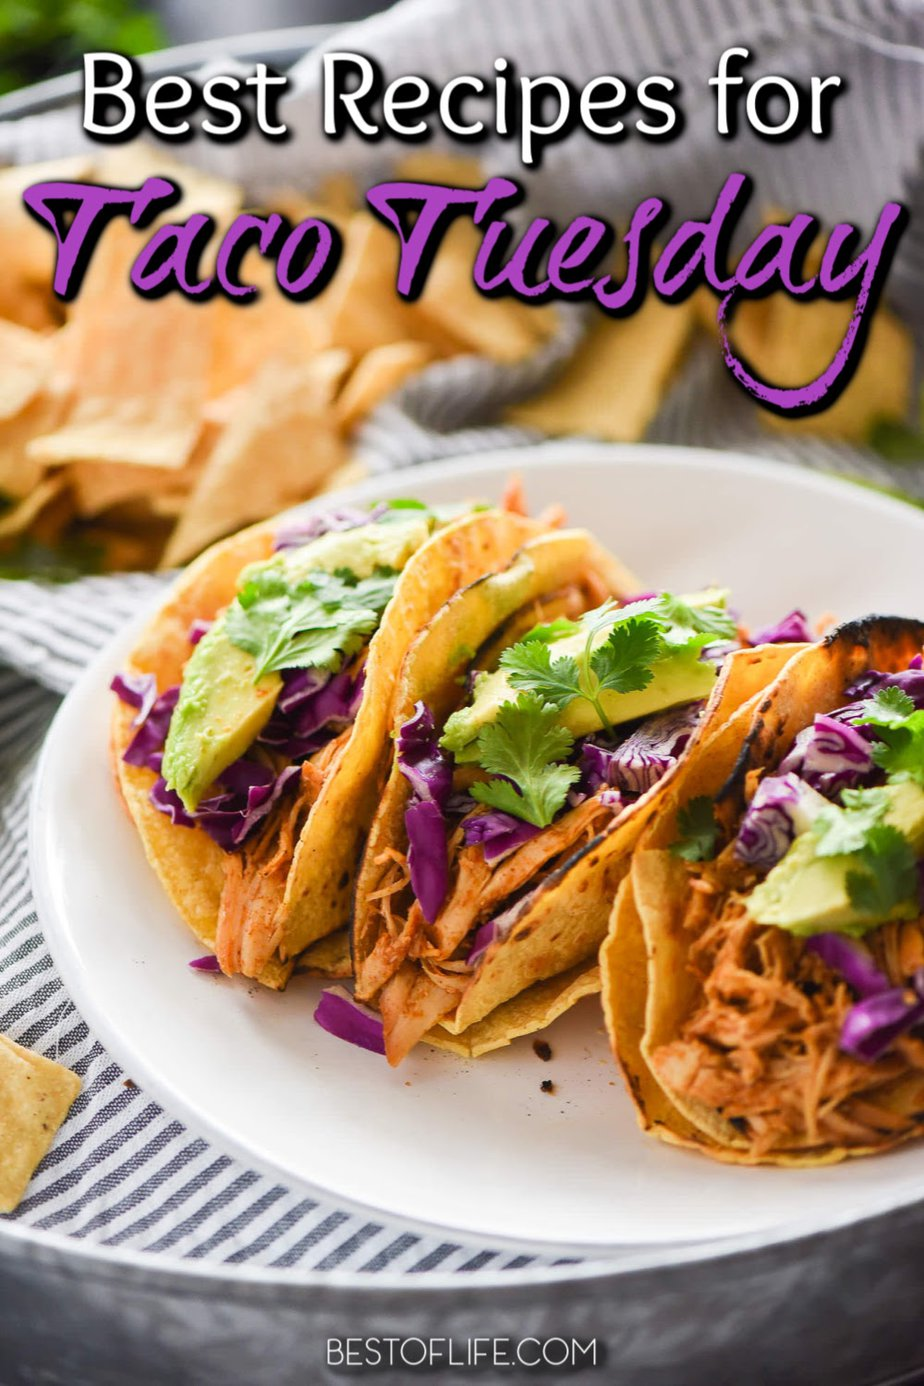 Mondays are rough. Tuesdays are better. Celebrate that every week with the best Taco Tuesday recipes. Easy Taco Recipes | Easy Margarita Recipes | Dinner Recipes | Cocktail Recipes #tacotuesday #recipes #margaritas